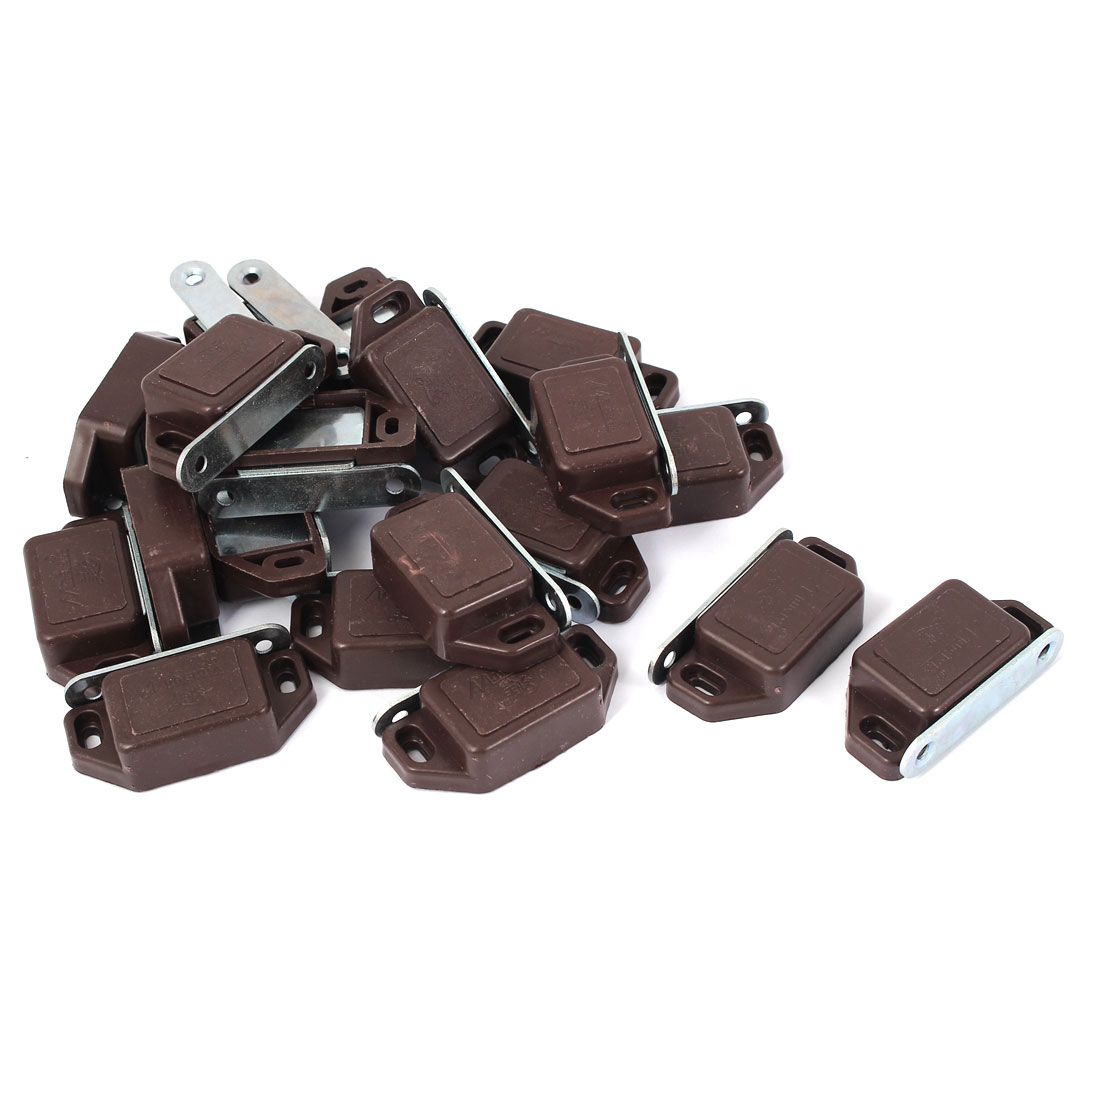 Cabinet Hardware Door Stopper Magnetic Catch Latch 57mm Length 20pcs